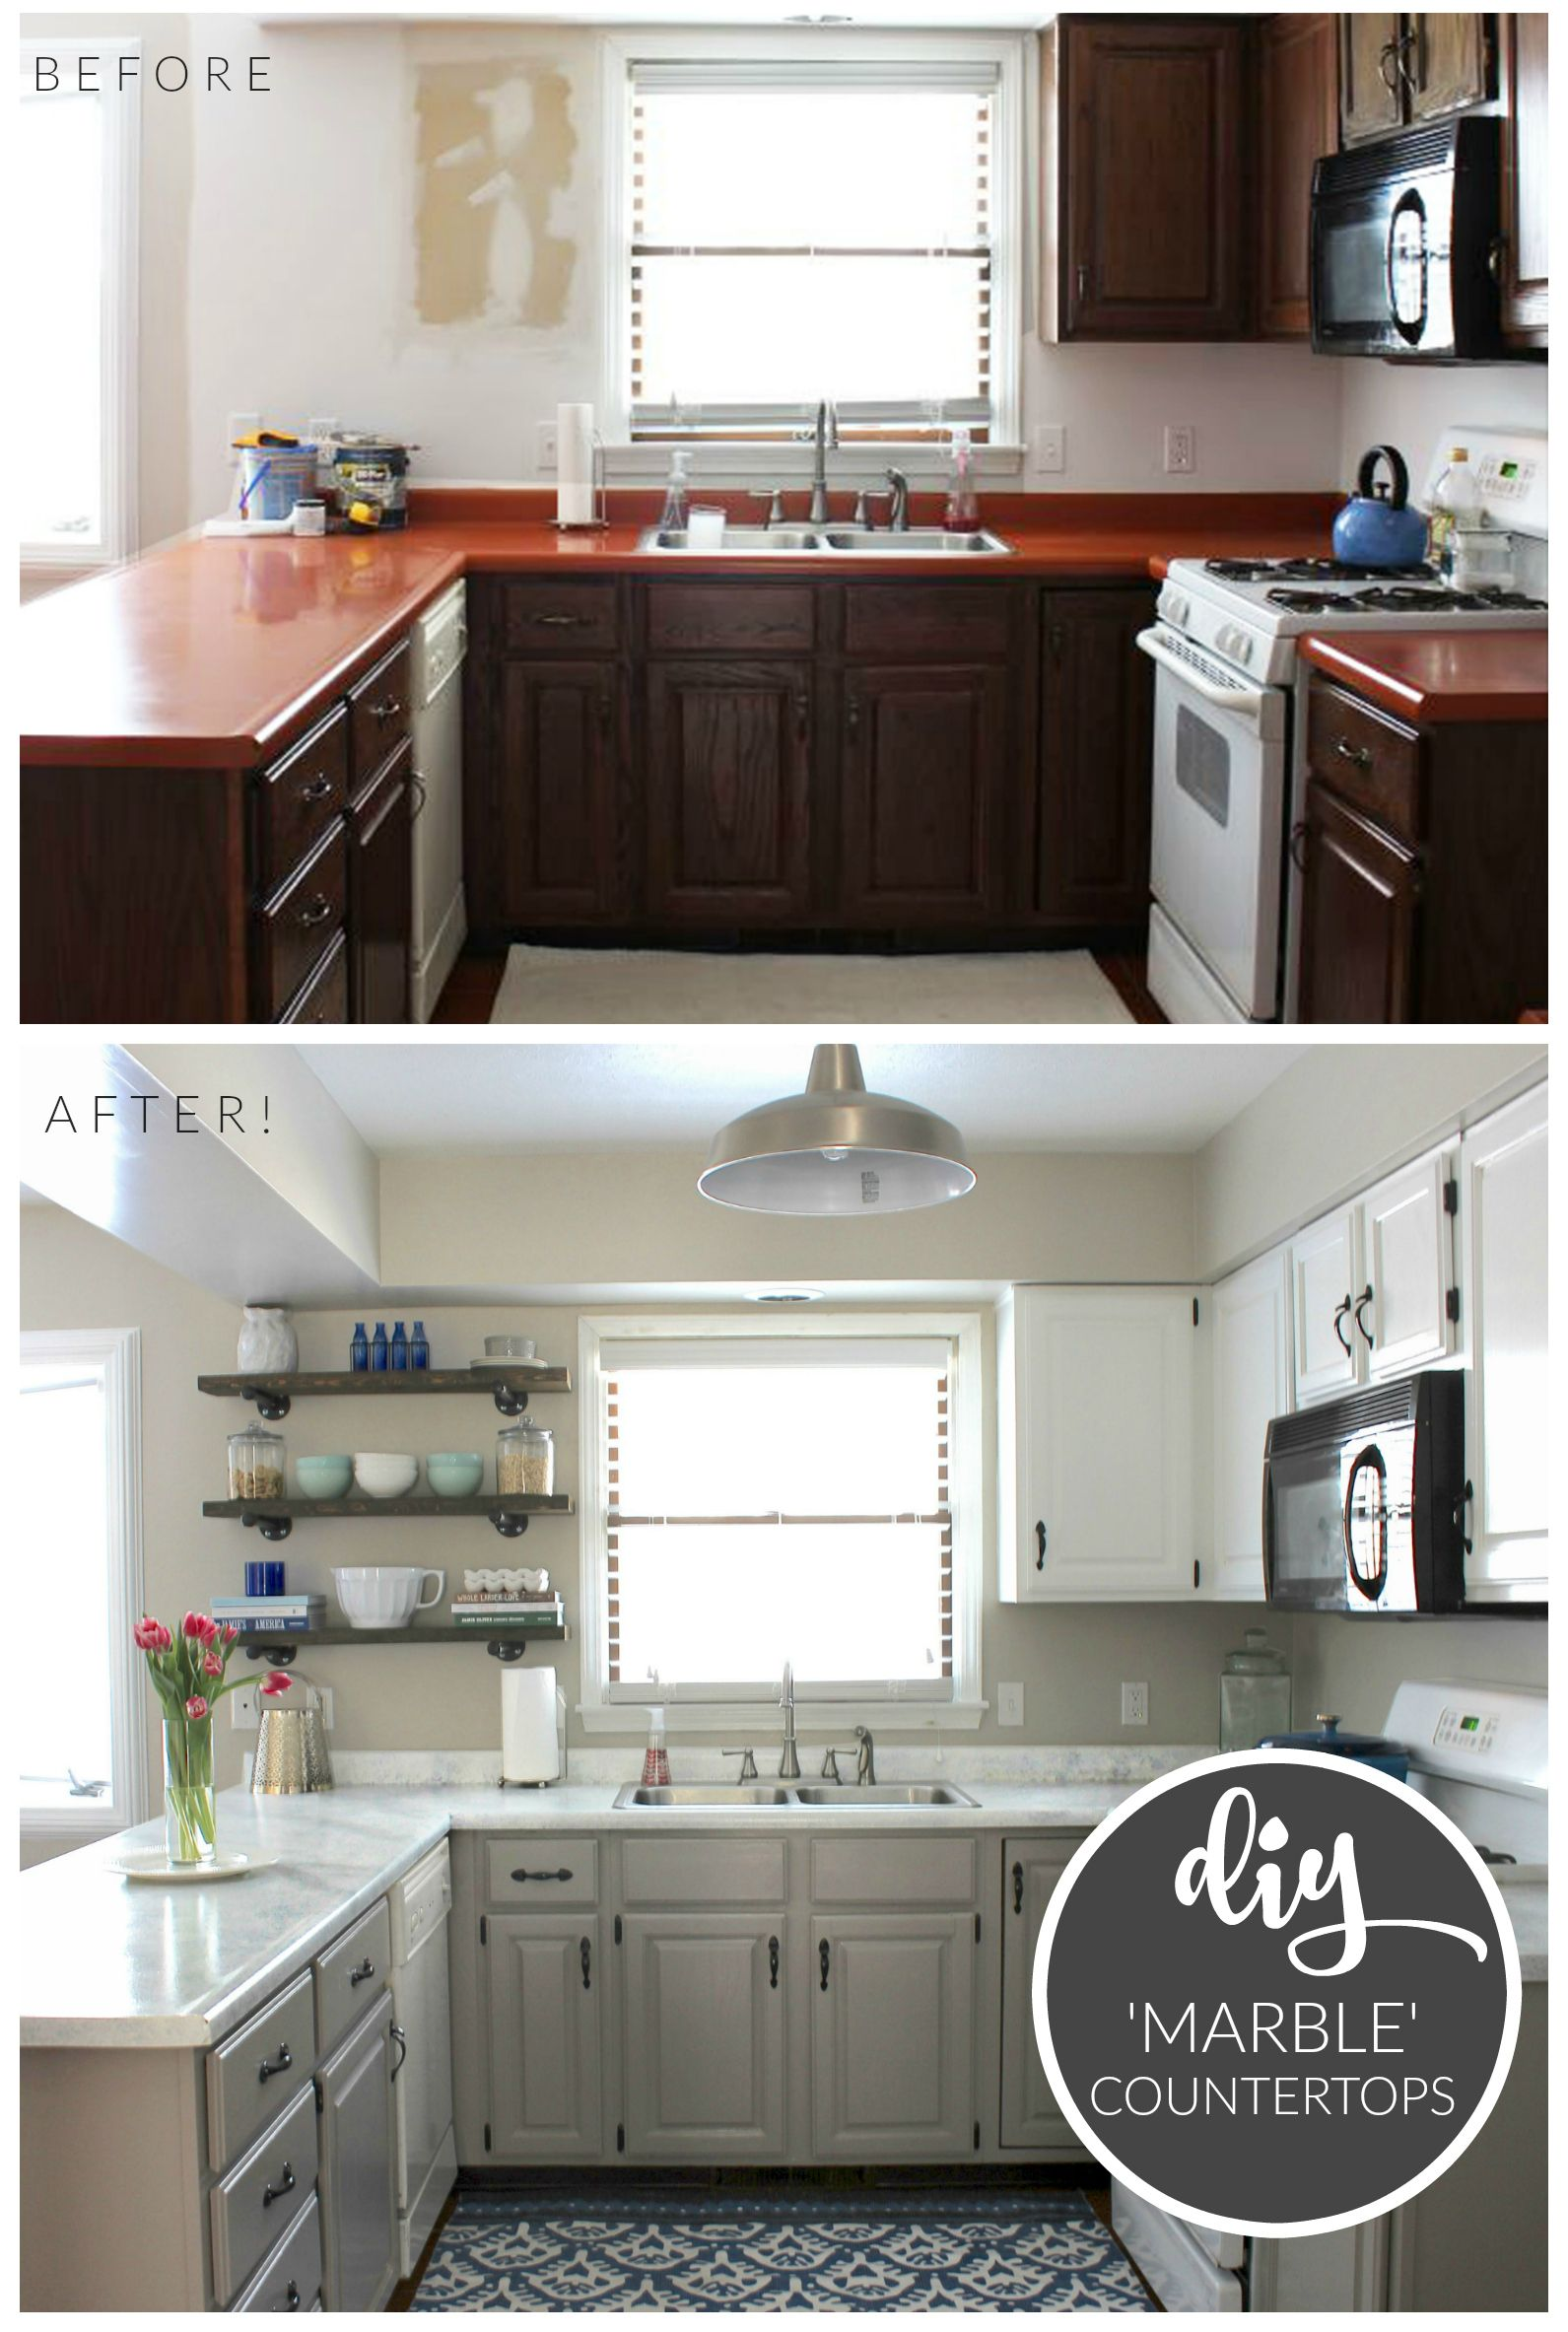 Budget kitchen makeover diy faux marble countertops - Kitchen cabinet diy makeover ...